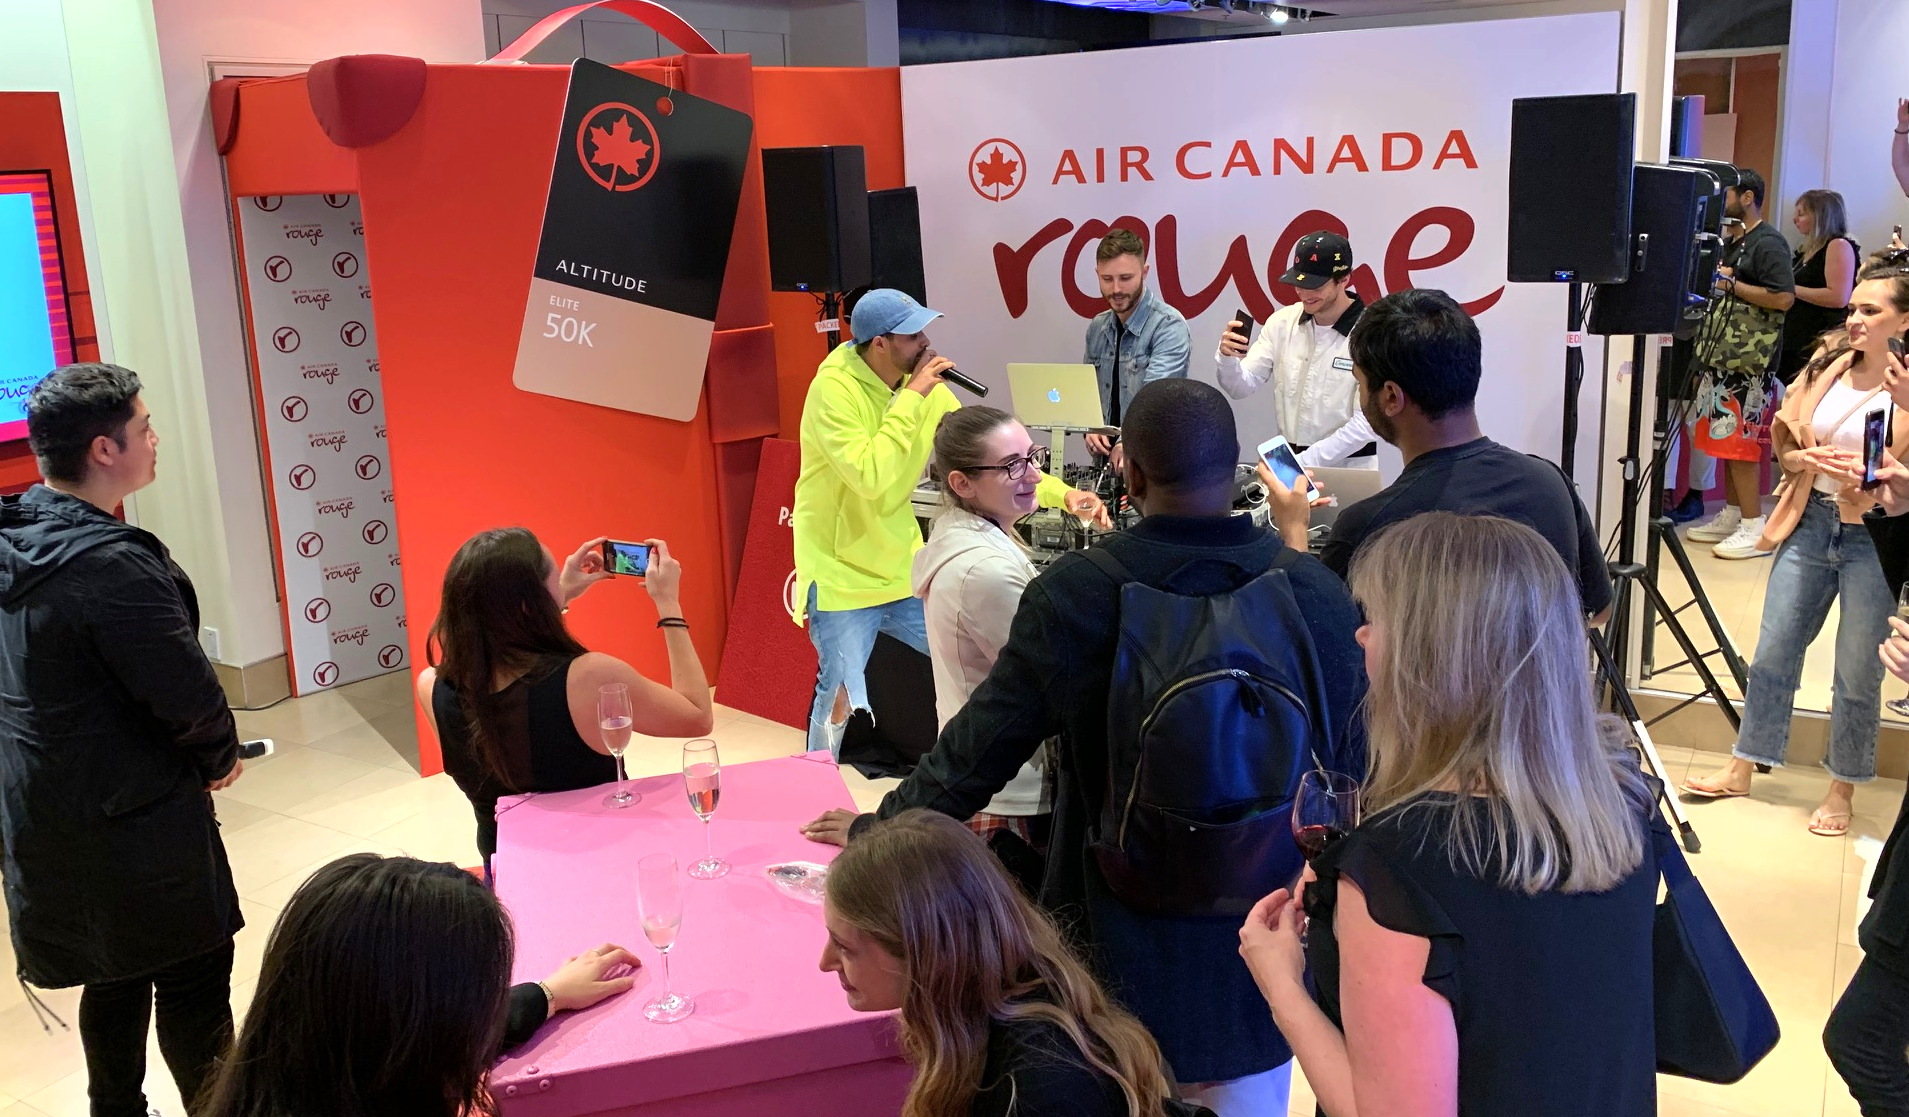 Inside Air Canada Rouge's pop-up experience, which opened today at Toronto's Eaton Centre mall.